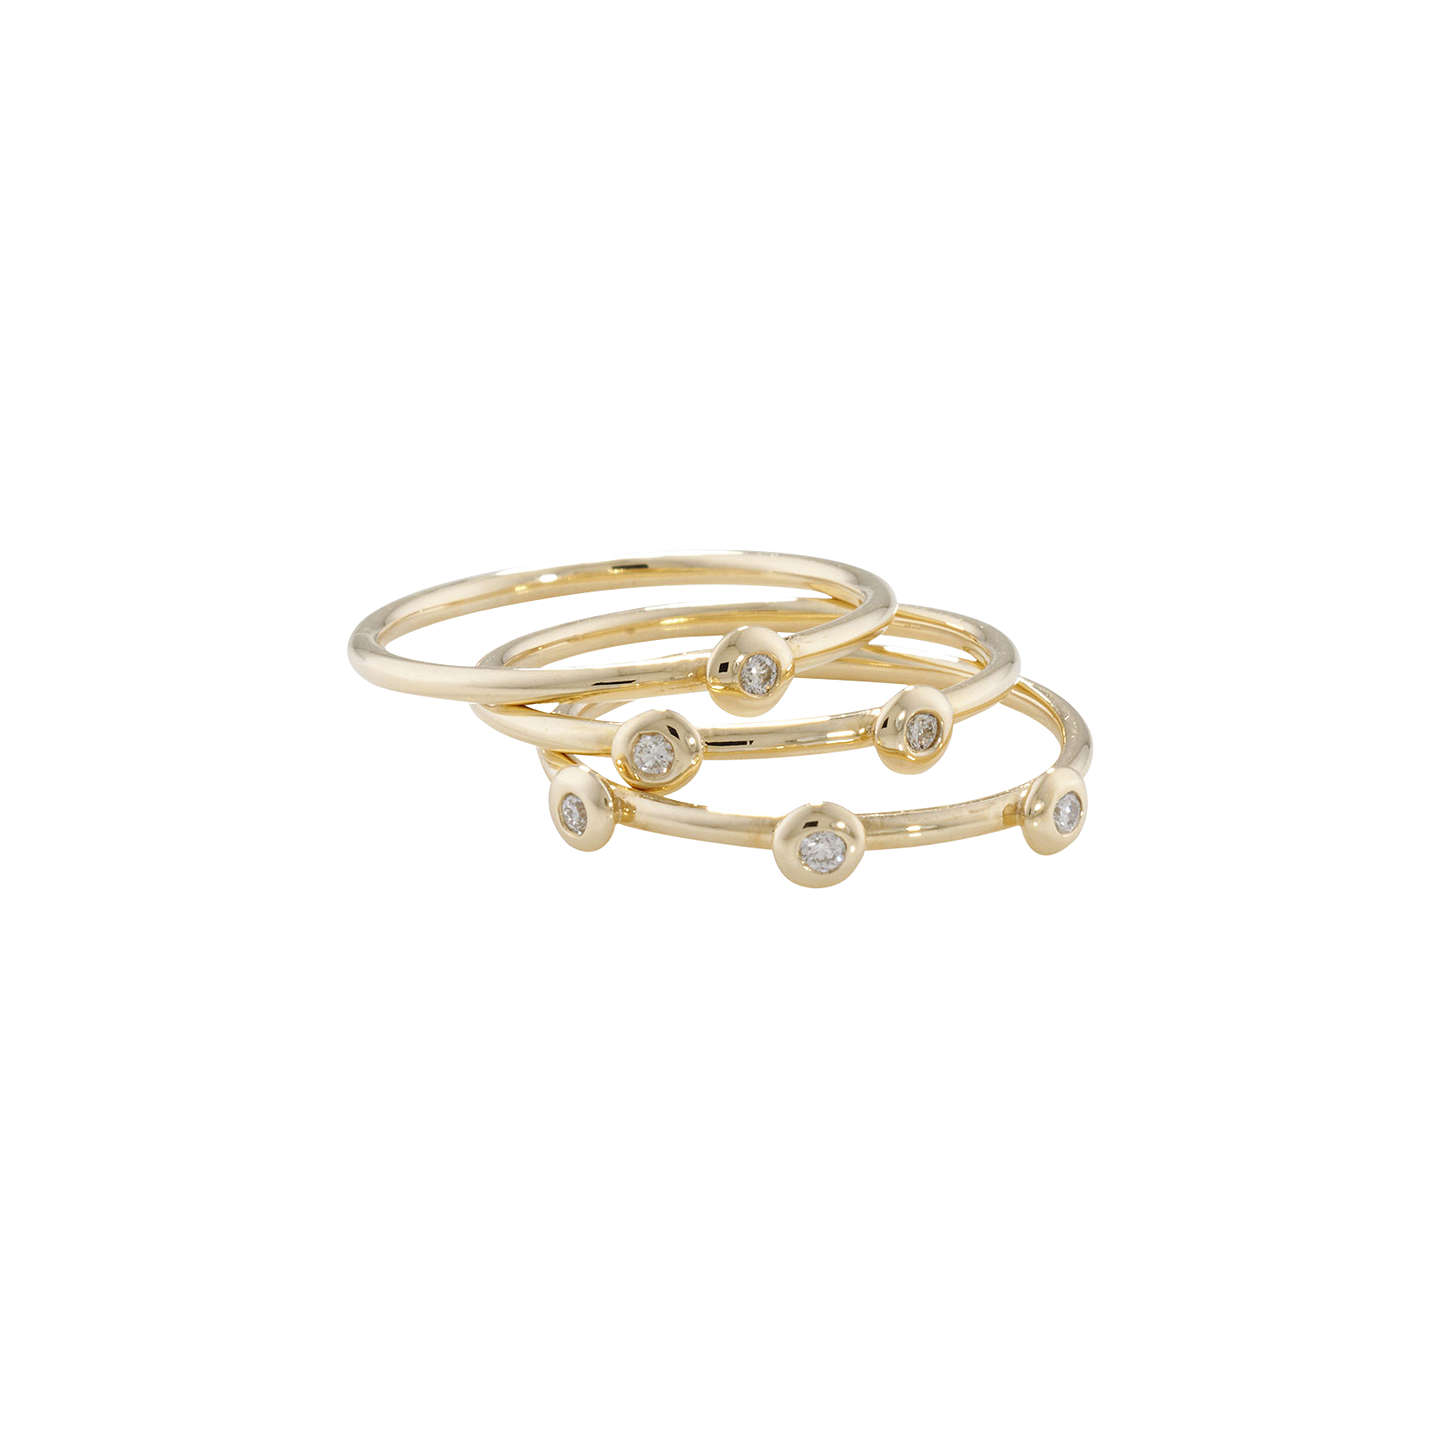 BuyLondon Road 9ct Gold Portobello Raindrop Stack Ring, Yellow Gold Online at johnlewis.com